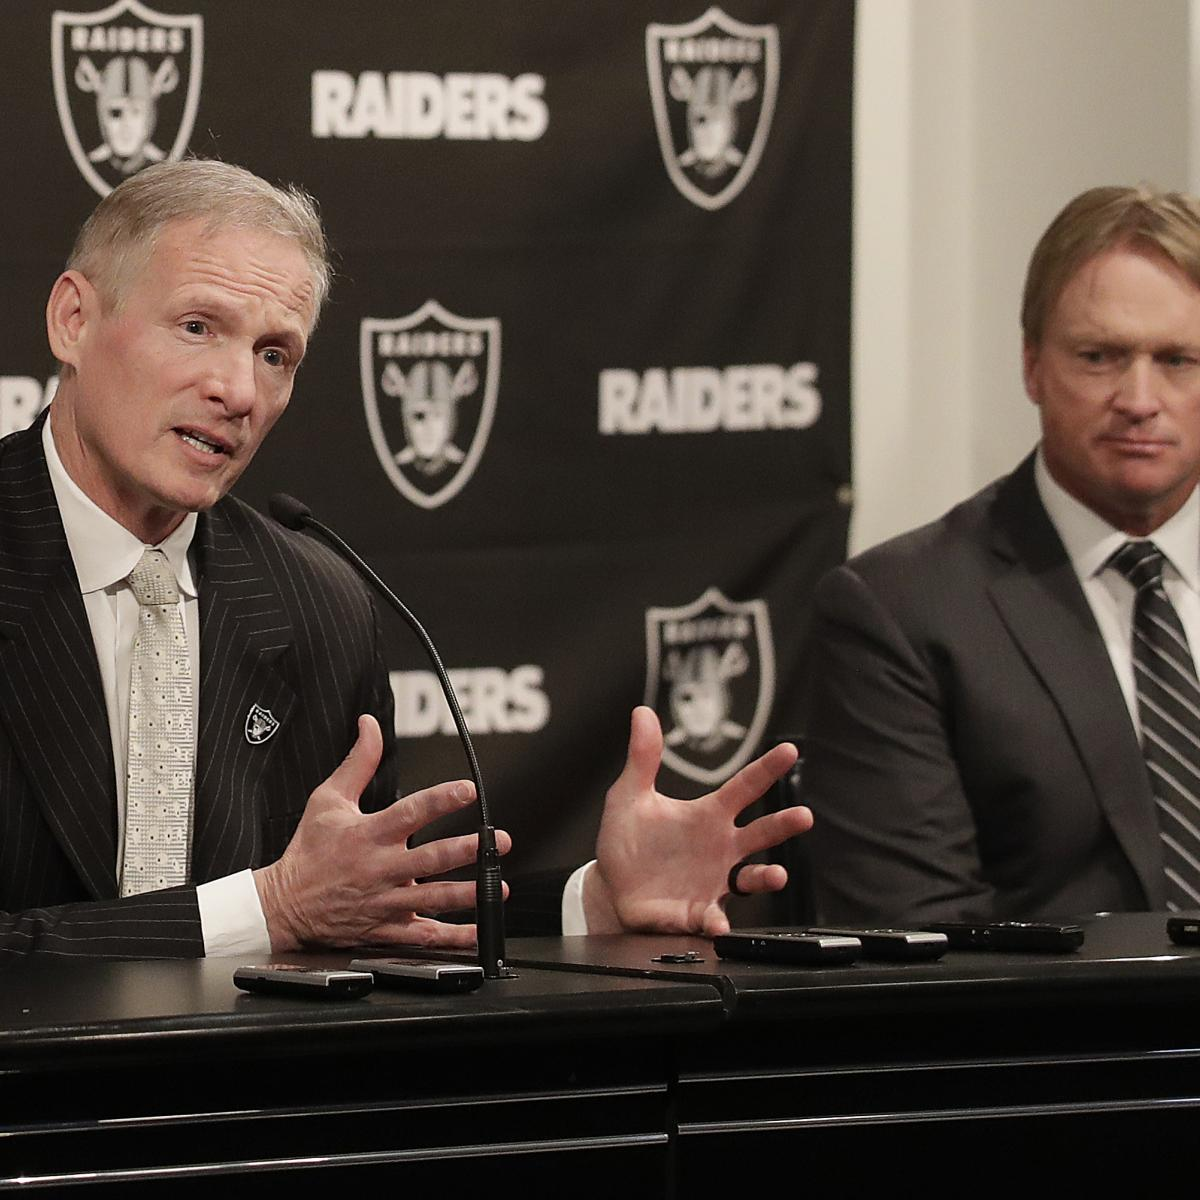 Raiders Rumors: Jon Gruden, Mike Mayock Sent Scouts Home Ahead of NFL Draft